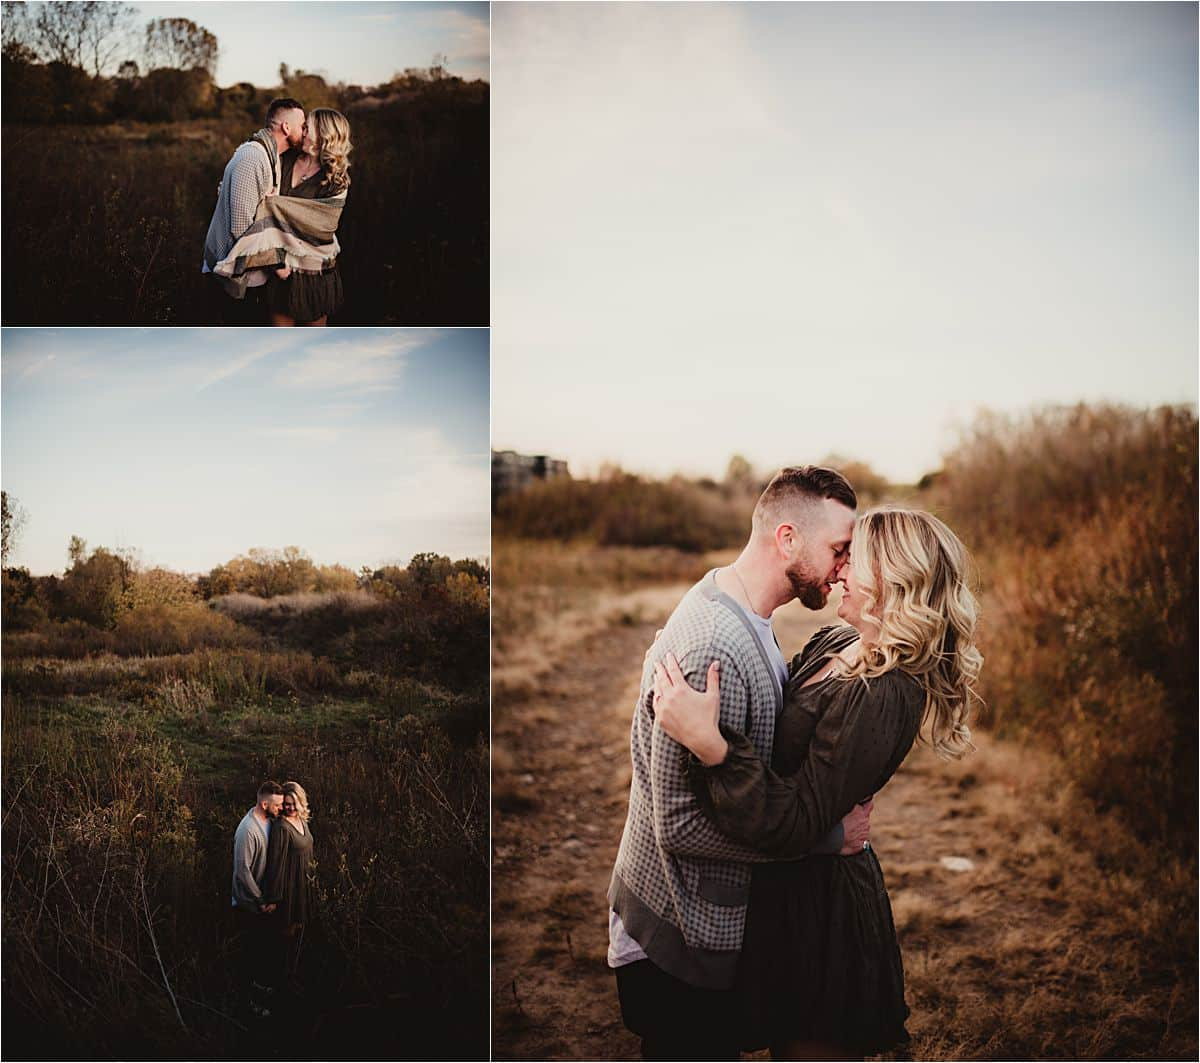 Collage Couple in Field